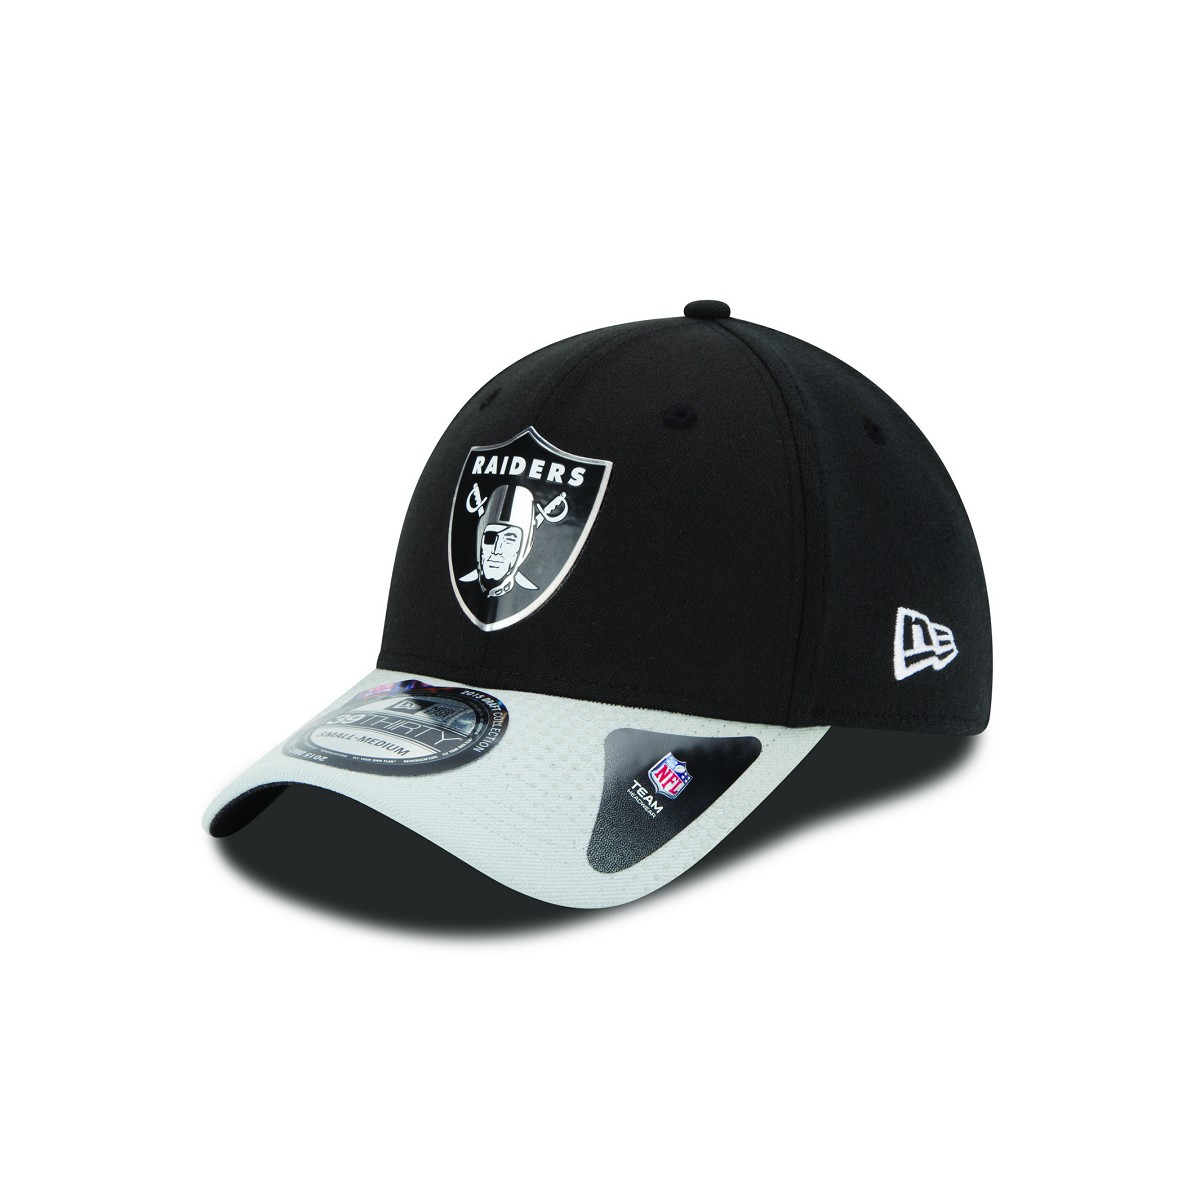 CAPPELLO NEW ERA 39THIRTY DRAFT 15 OAKLAND RAIDERS 39THIRTY FOOTBALL ... cc8469abab91